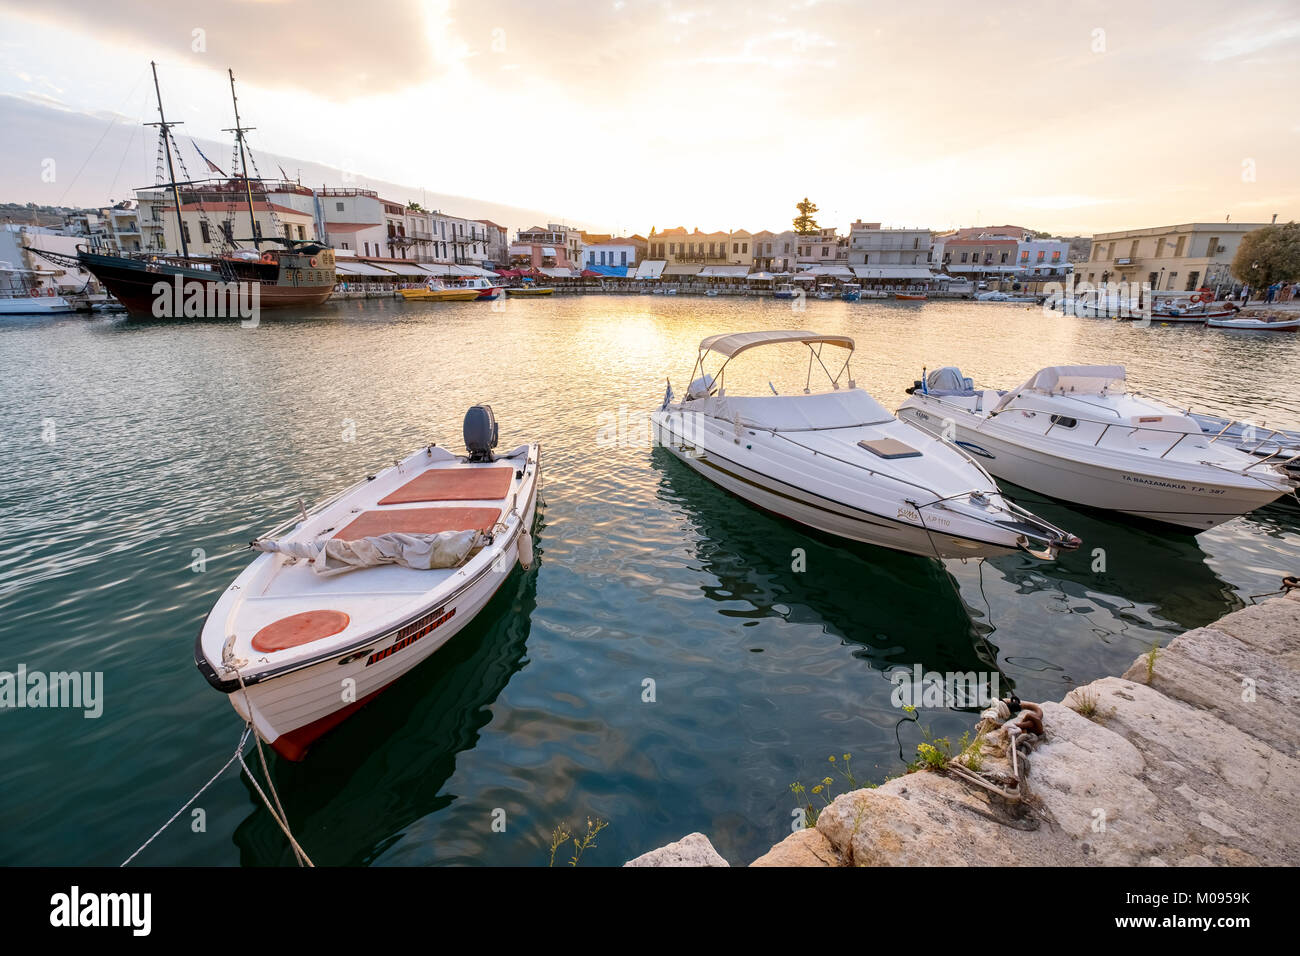 Evening mood with boats and restaurants at Venetian harbor, Rethymno, Rethimnon, Panorama, Crete, Greece, Europe, - Stock Image